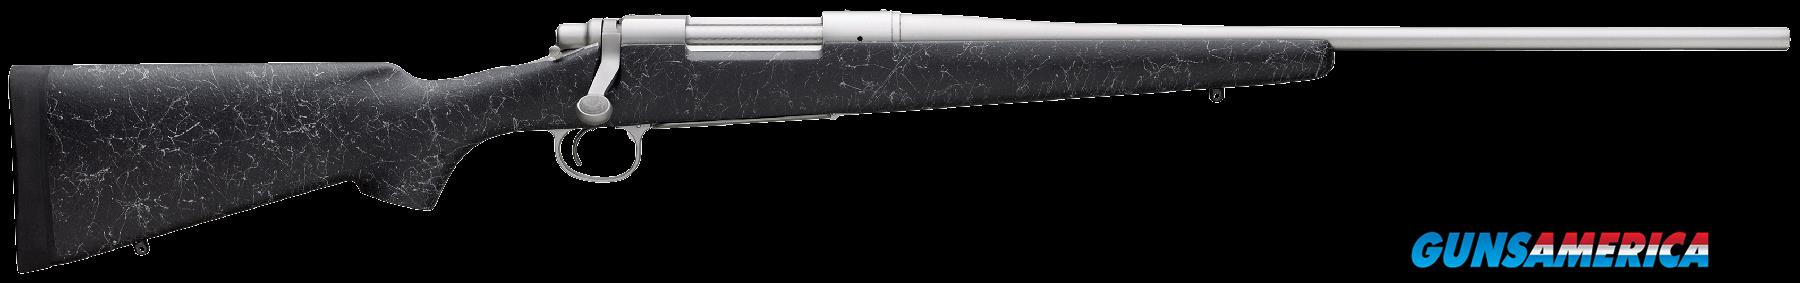 "Remington Firearms 84273 700 Mountain SS Bolt 270 Win 22"" 4+1 Synthetic Black Stk Stainless Steel  Guns > Rifles > R Misc Rifles"